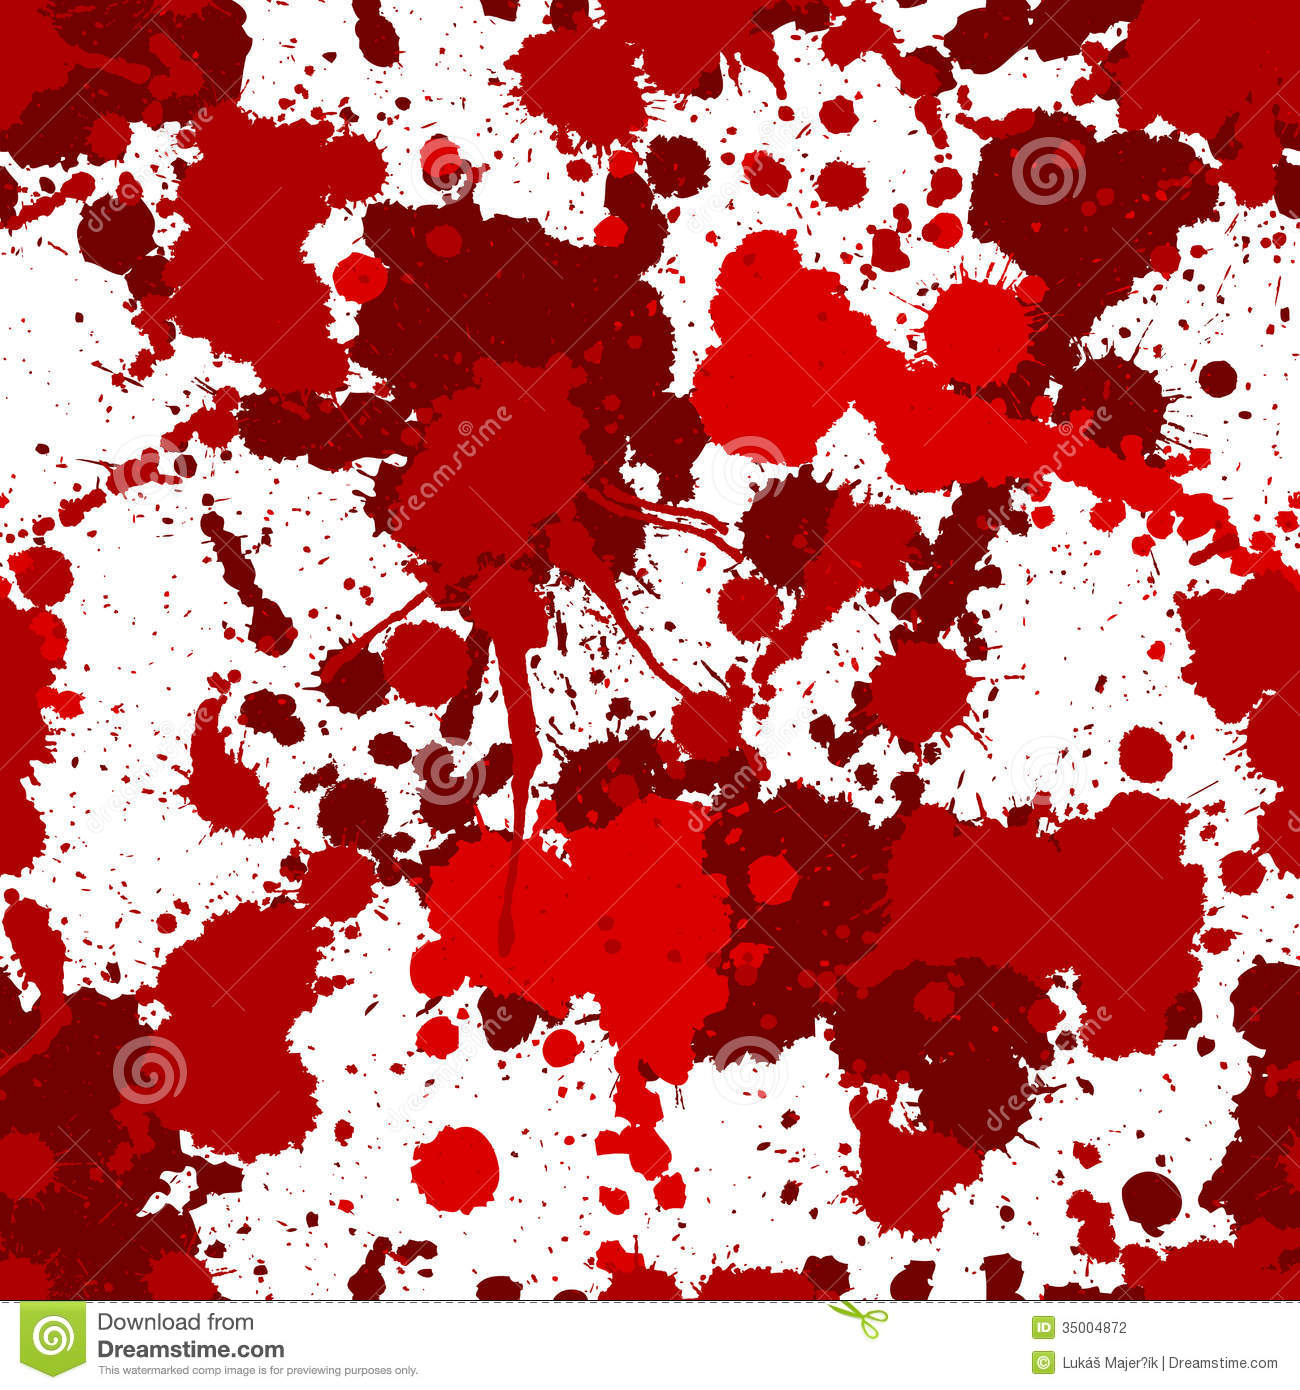 Black And White Dot Wallpaper Seamless Red Bloody Splats Pattern Stock Vector